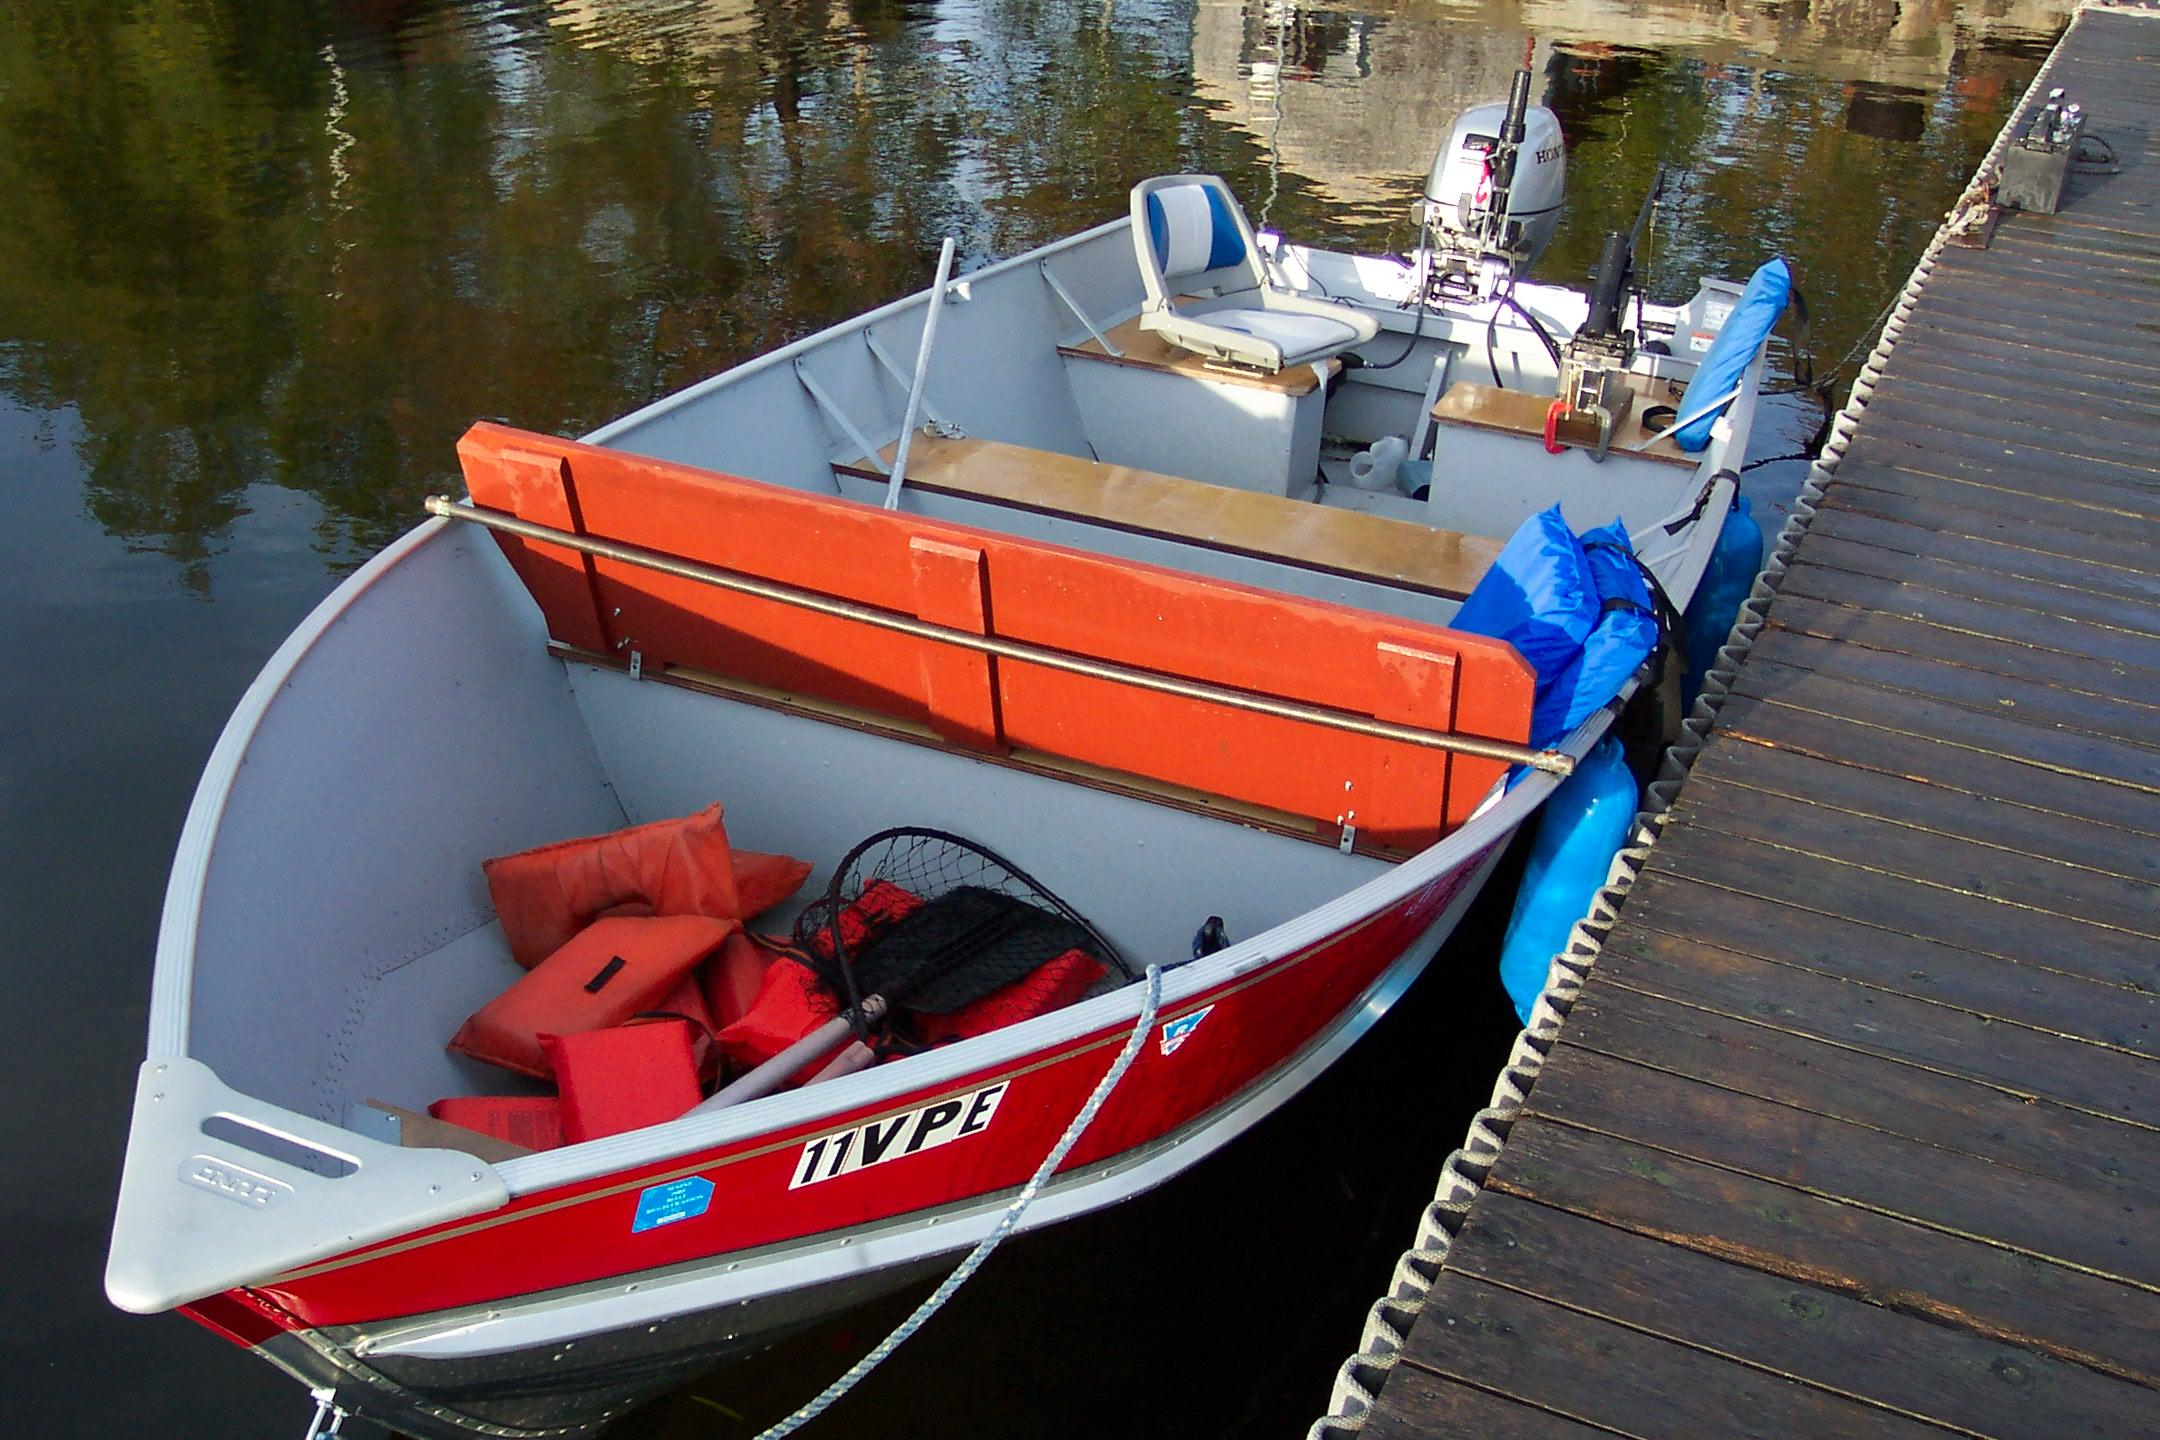 Rideout 39 s lodge boat rentals for Fishing boat rentals near me